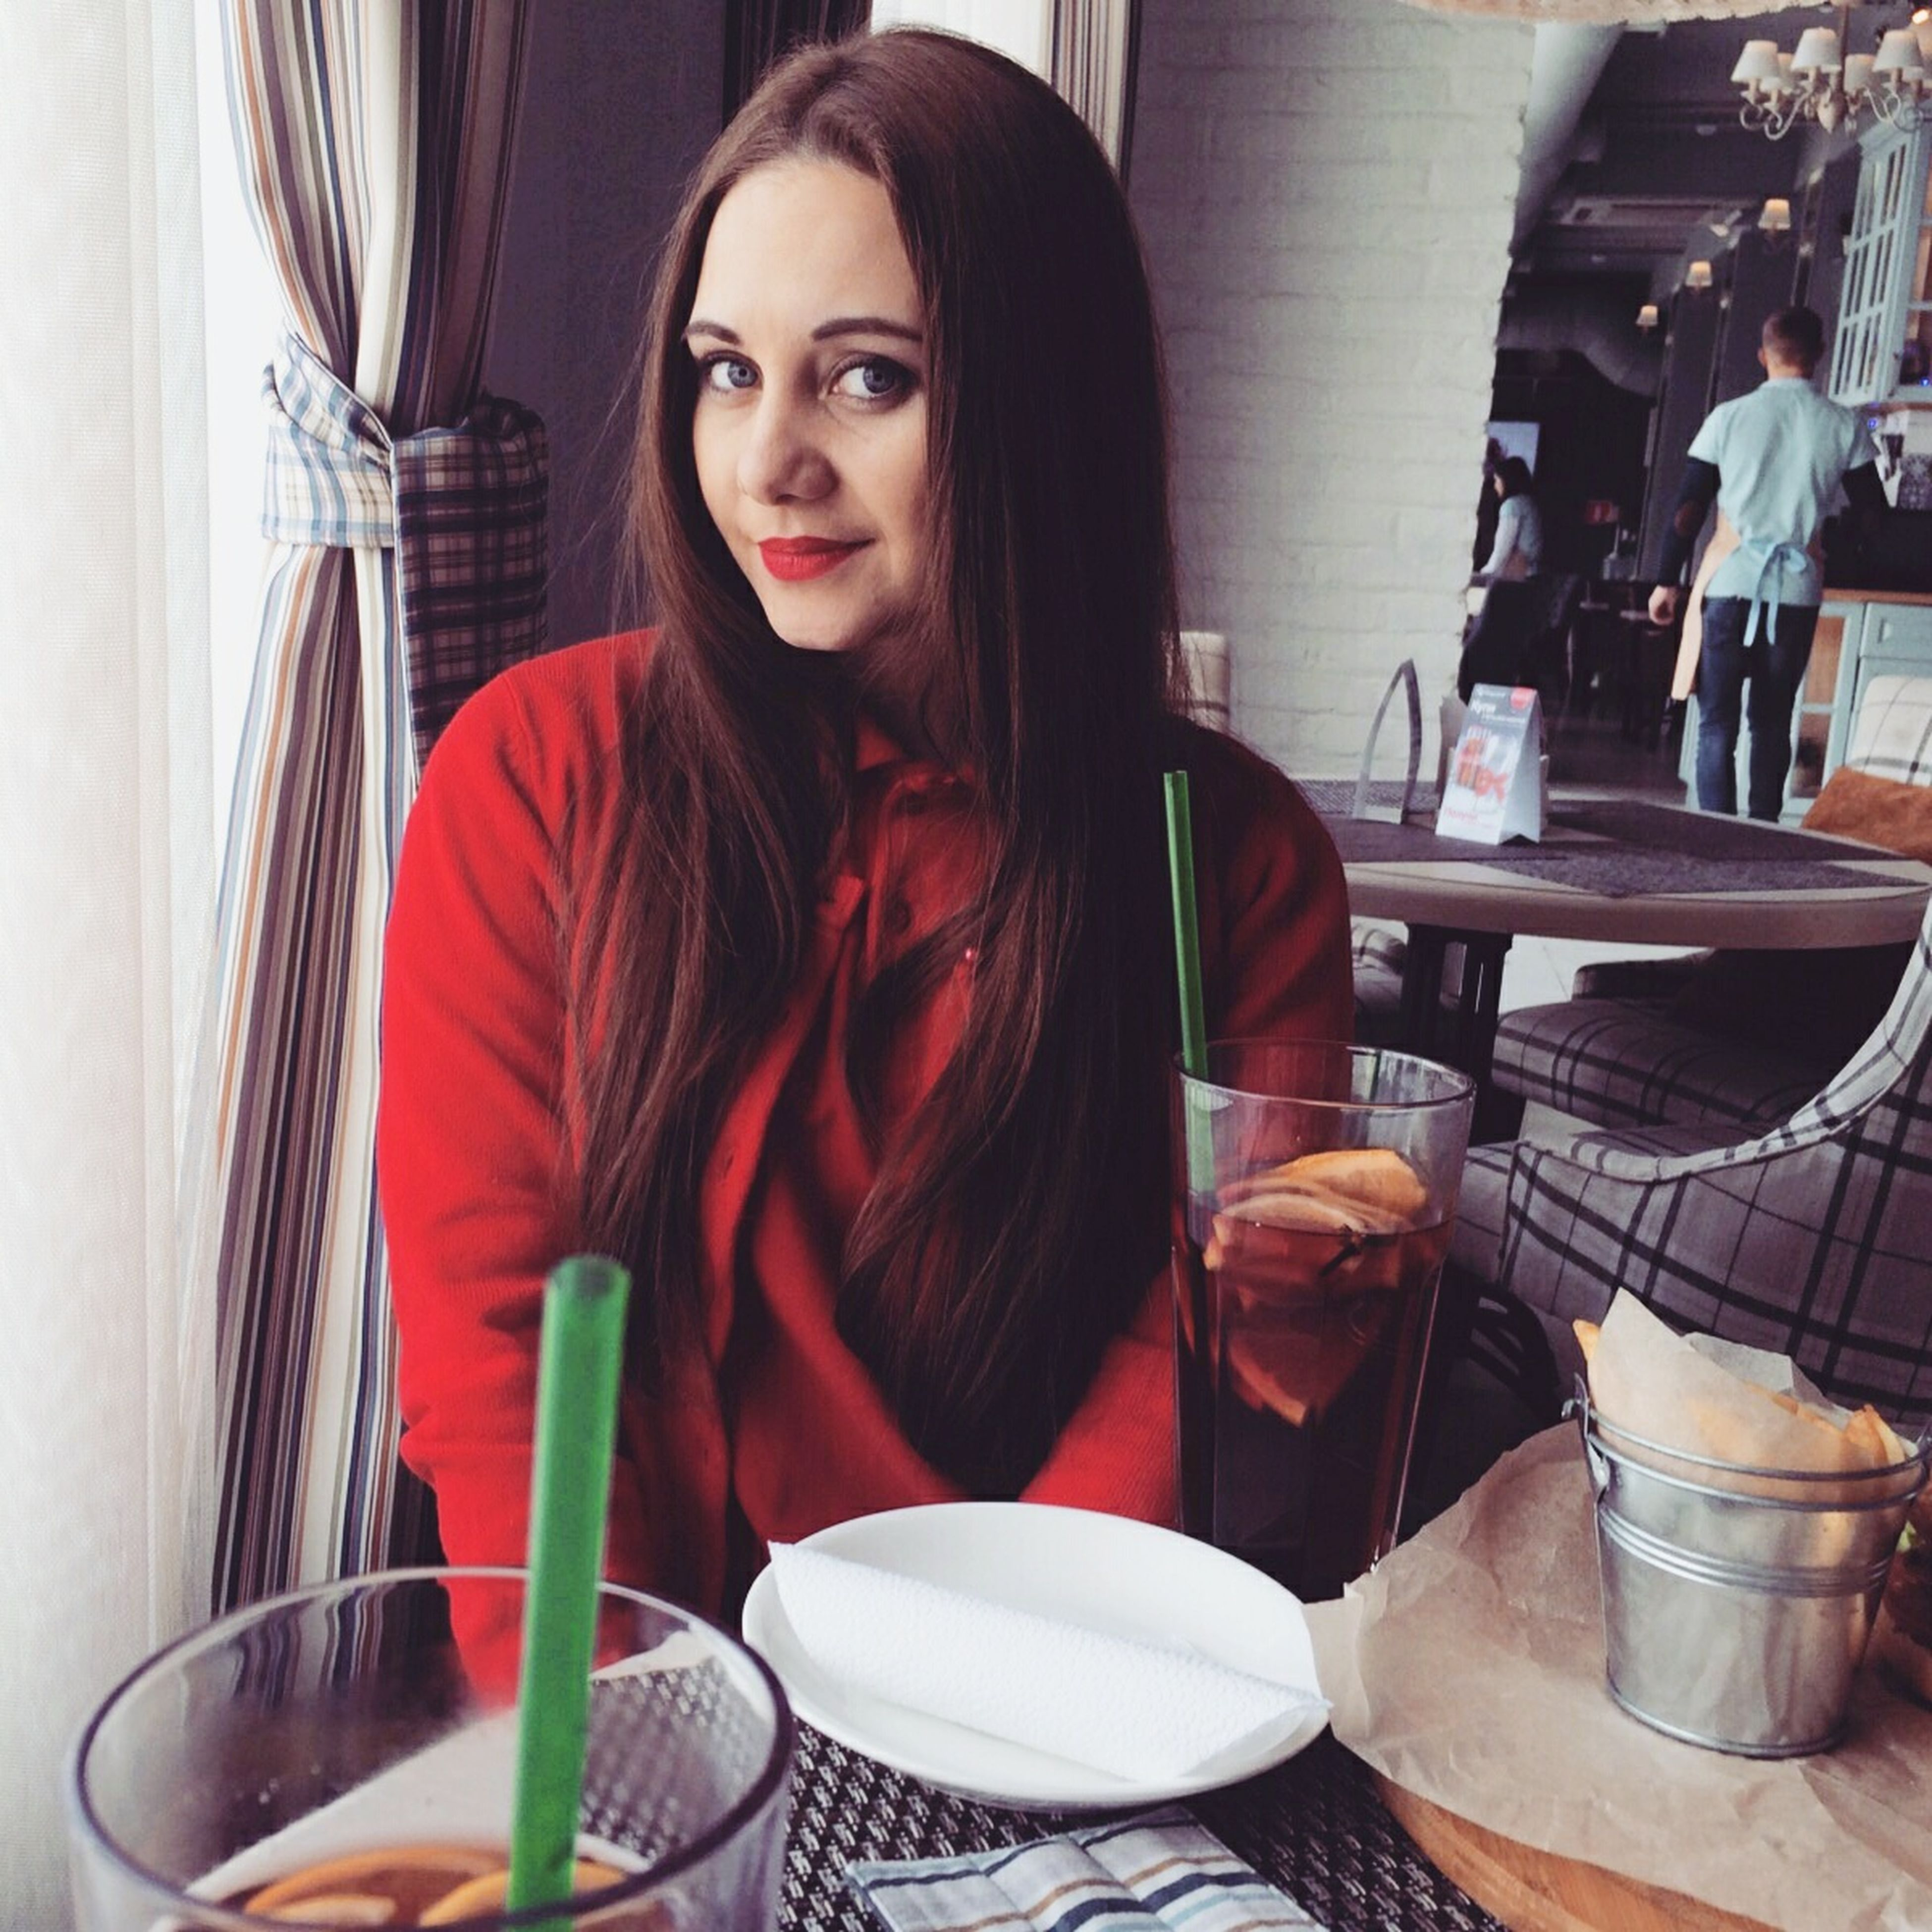 indoors, food and drink, drink, table, lifestyles, freshness, food, restaurant, sitting, young adult, leisure activity, casual clothing, refreshment, young women, person, front view, holding, plate